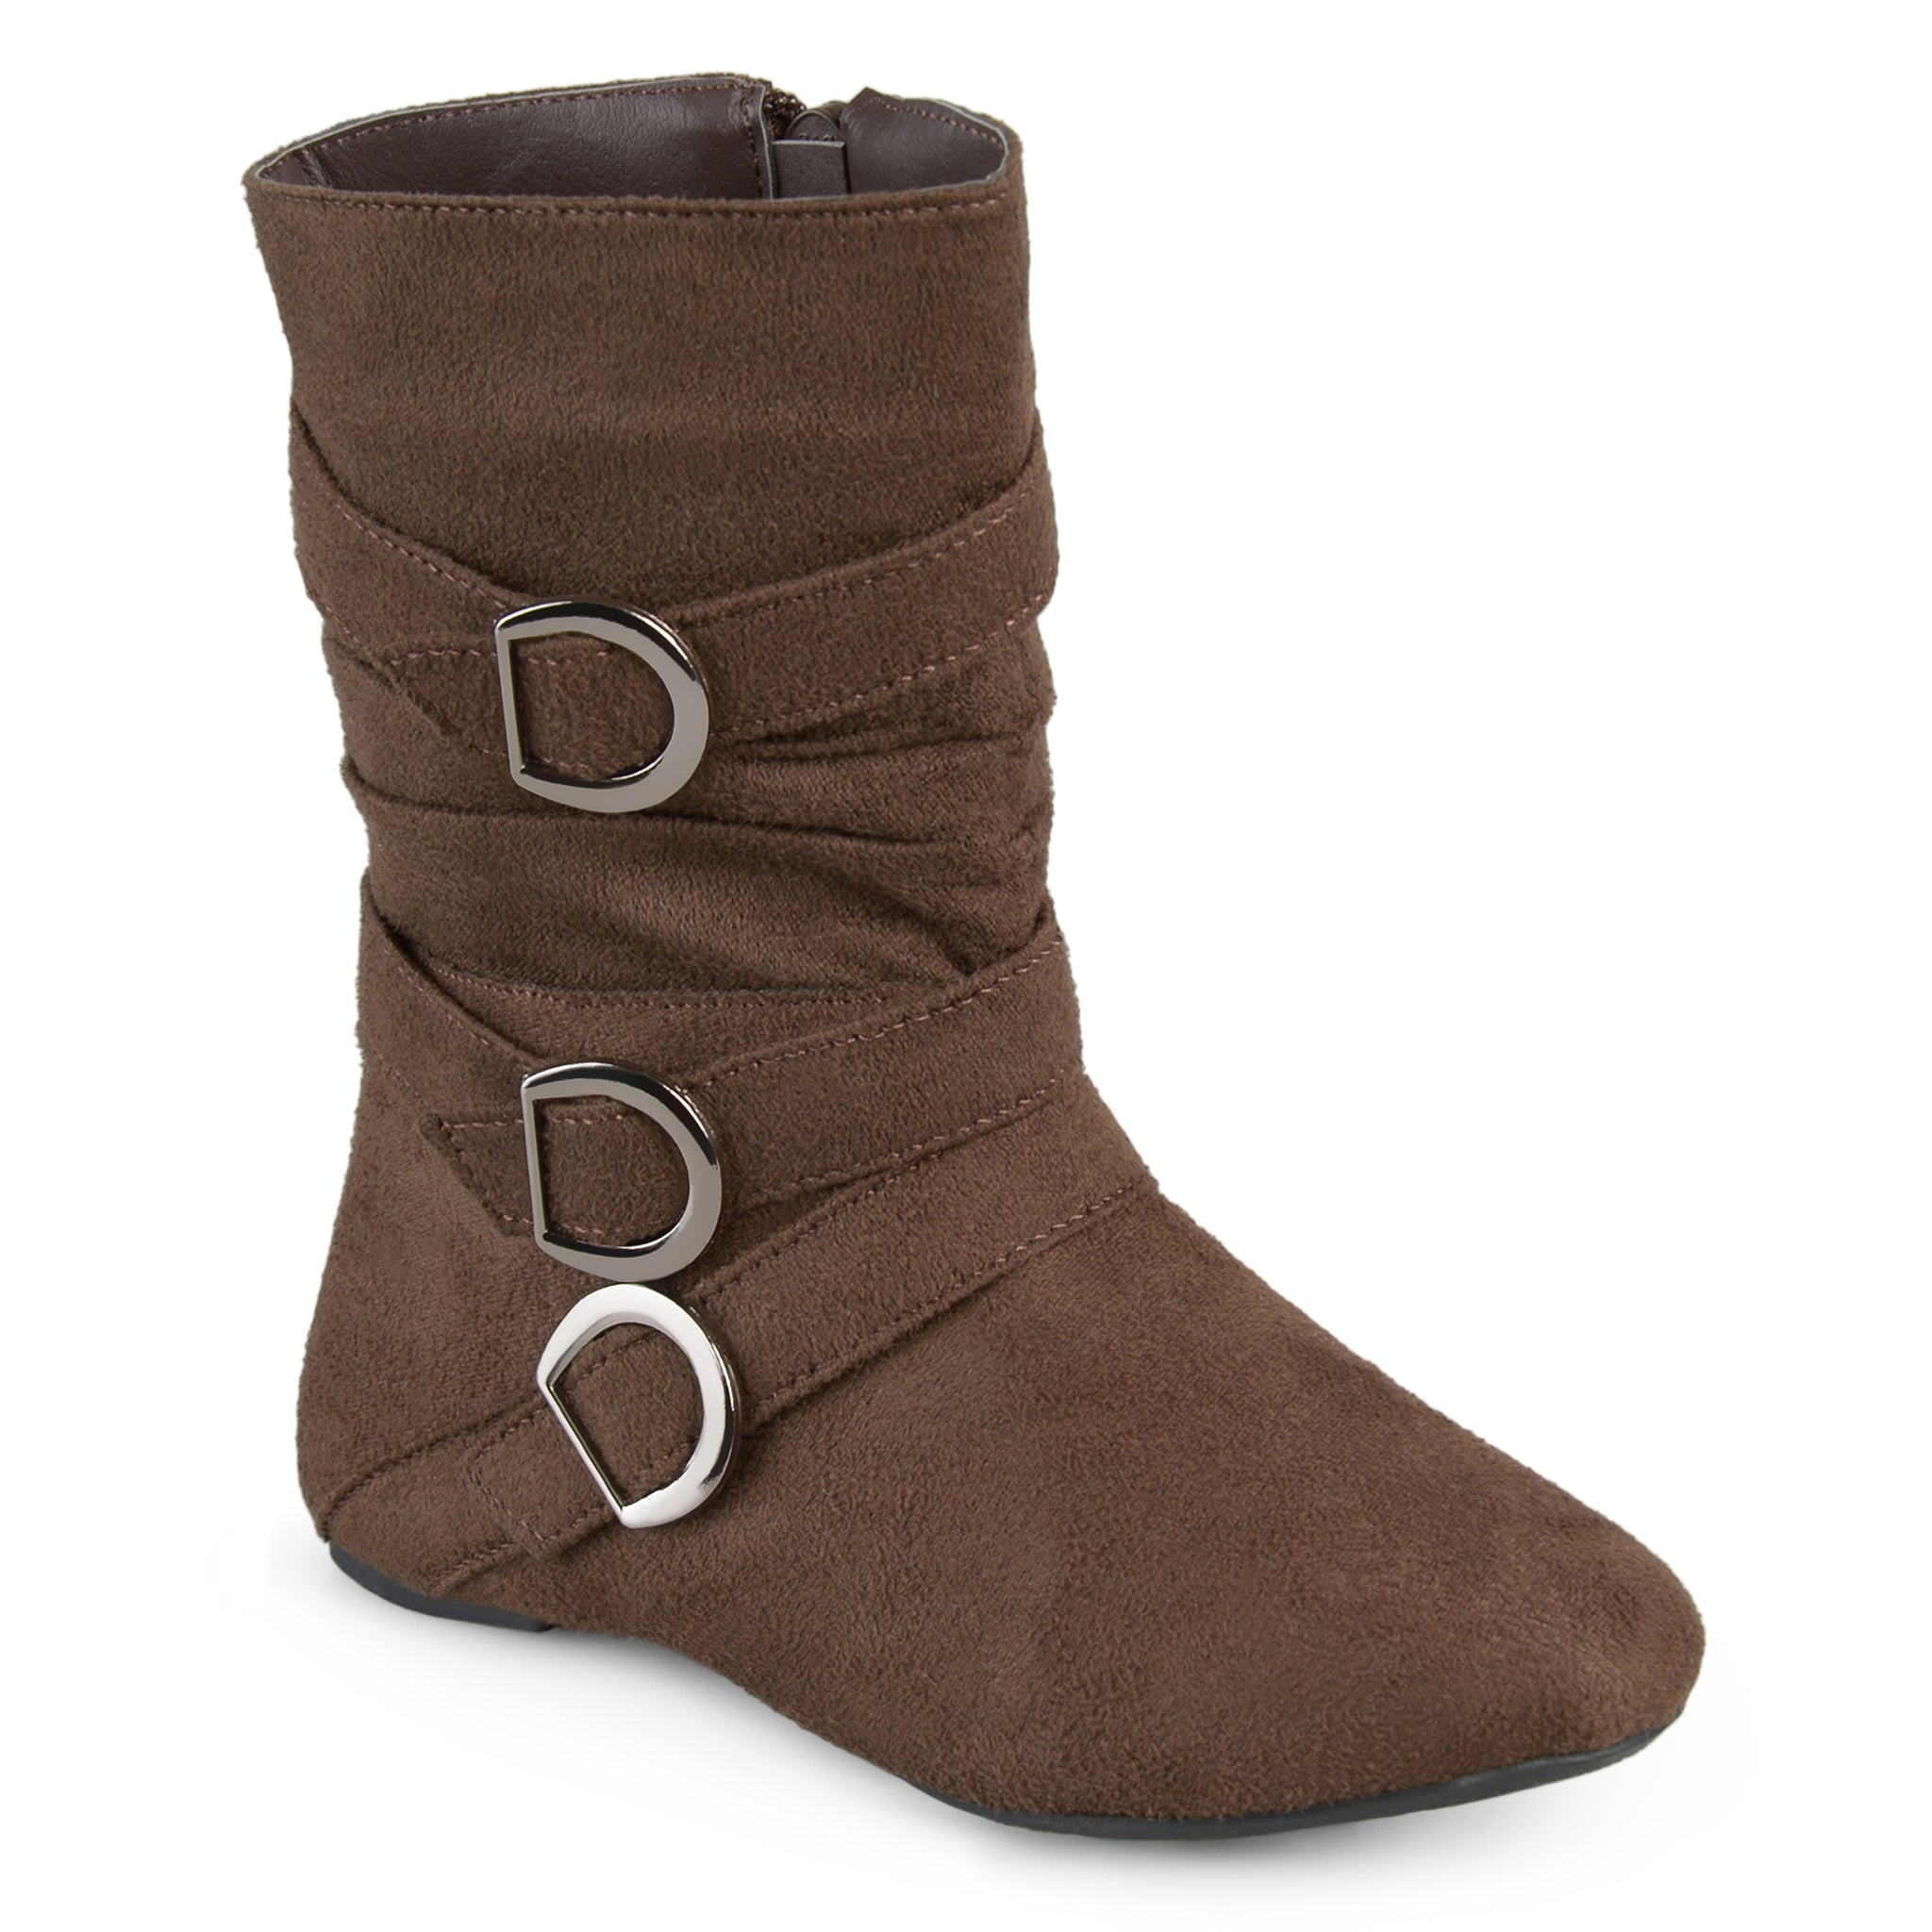 Buckle-Strap Suede Boots